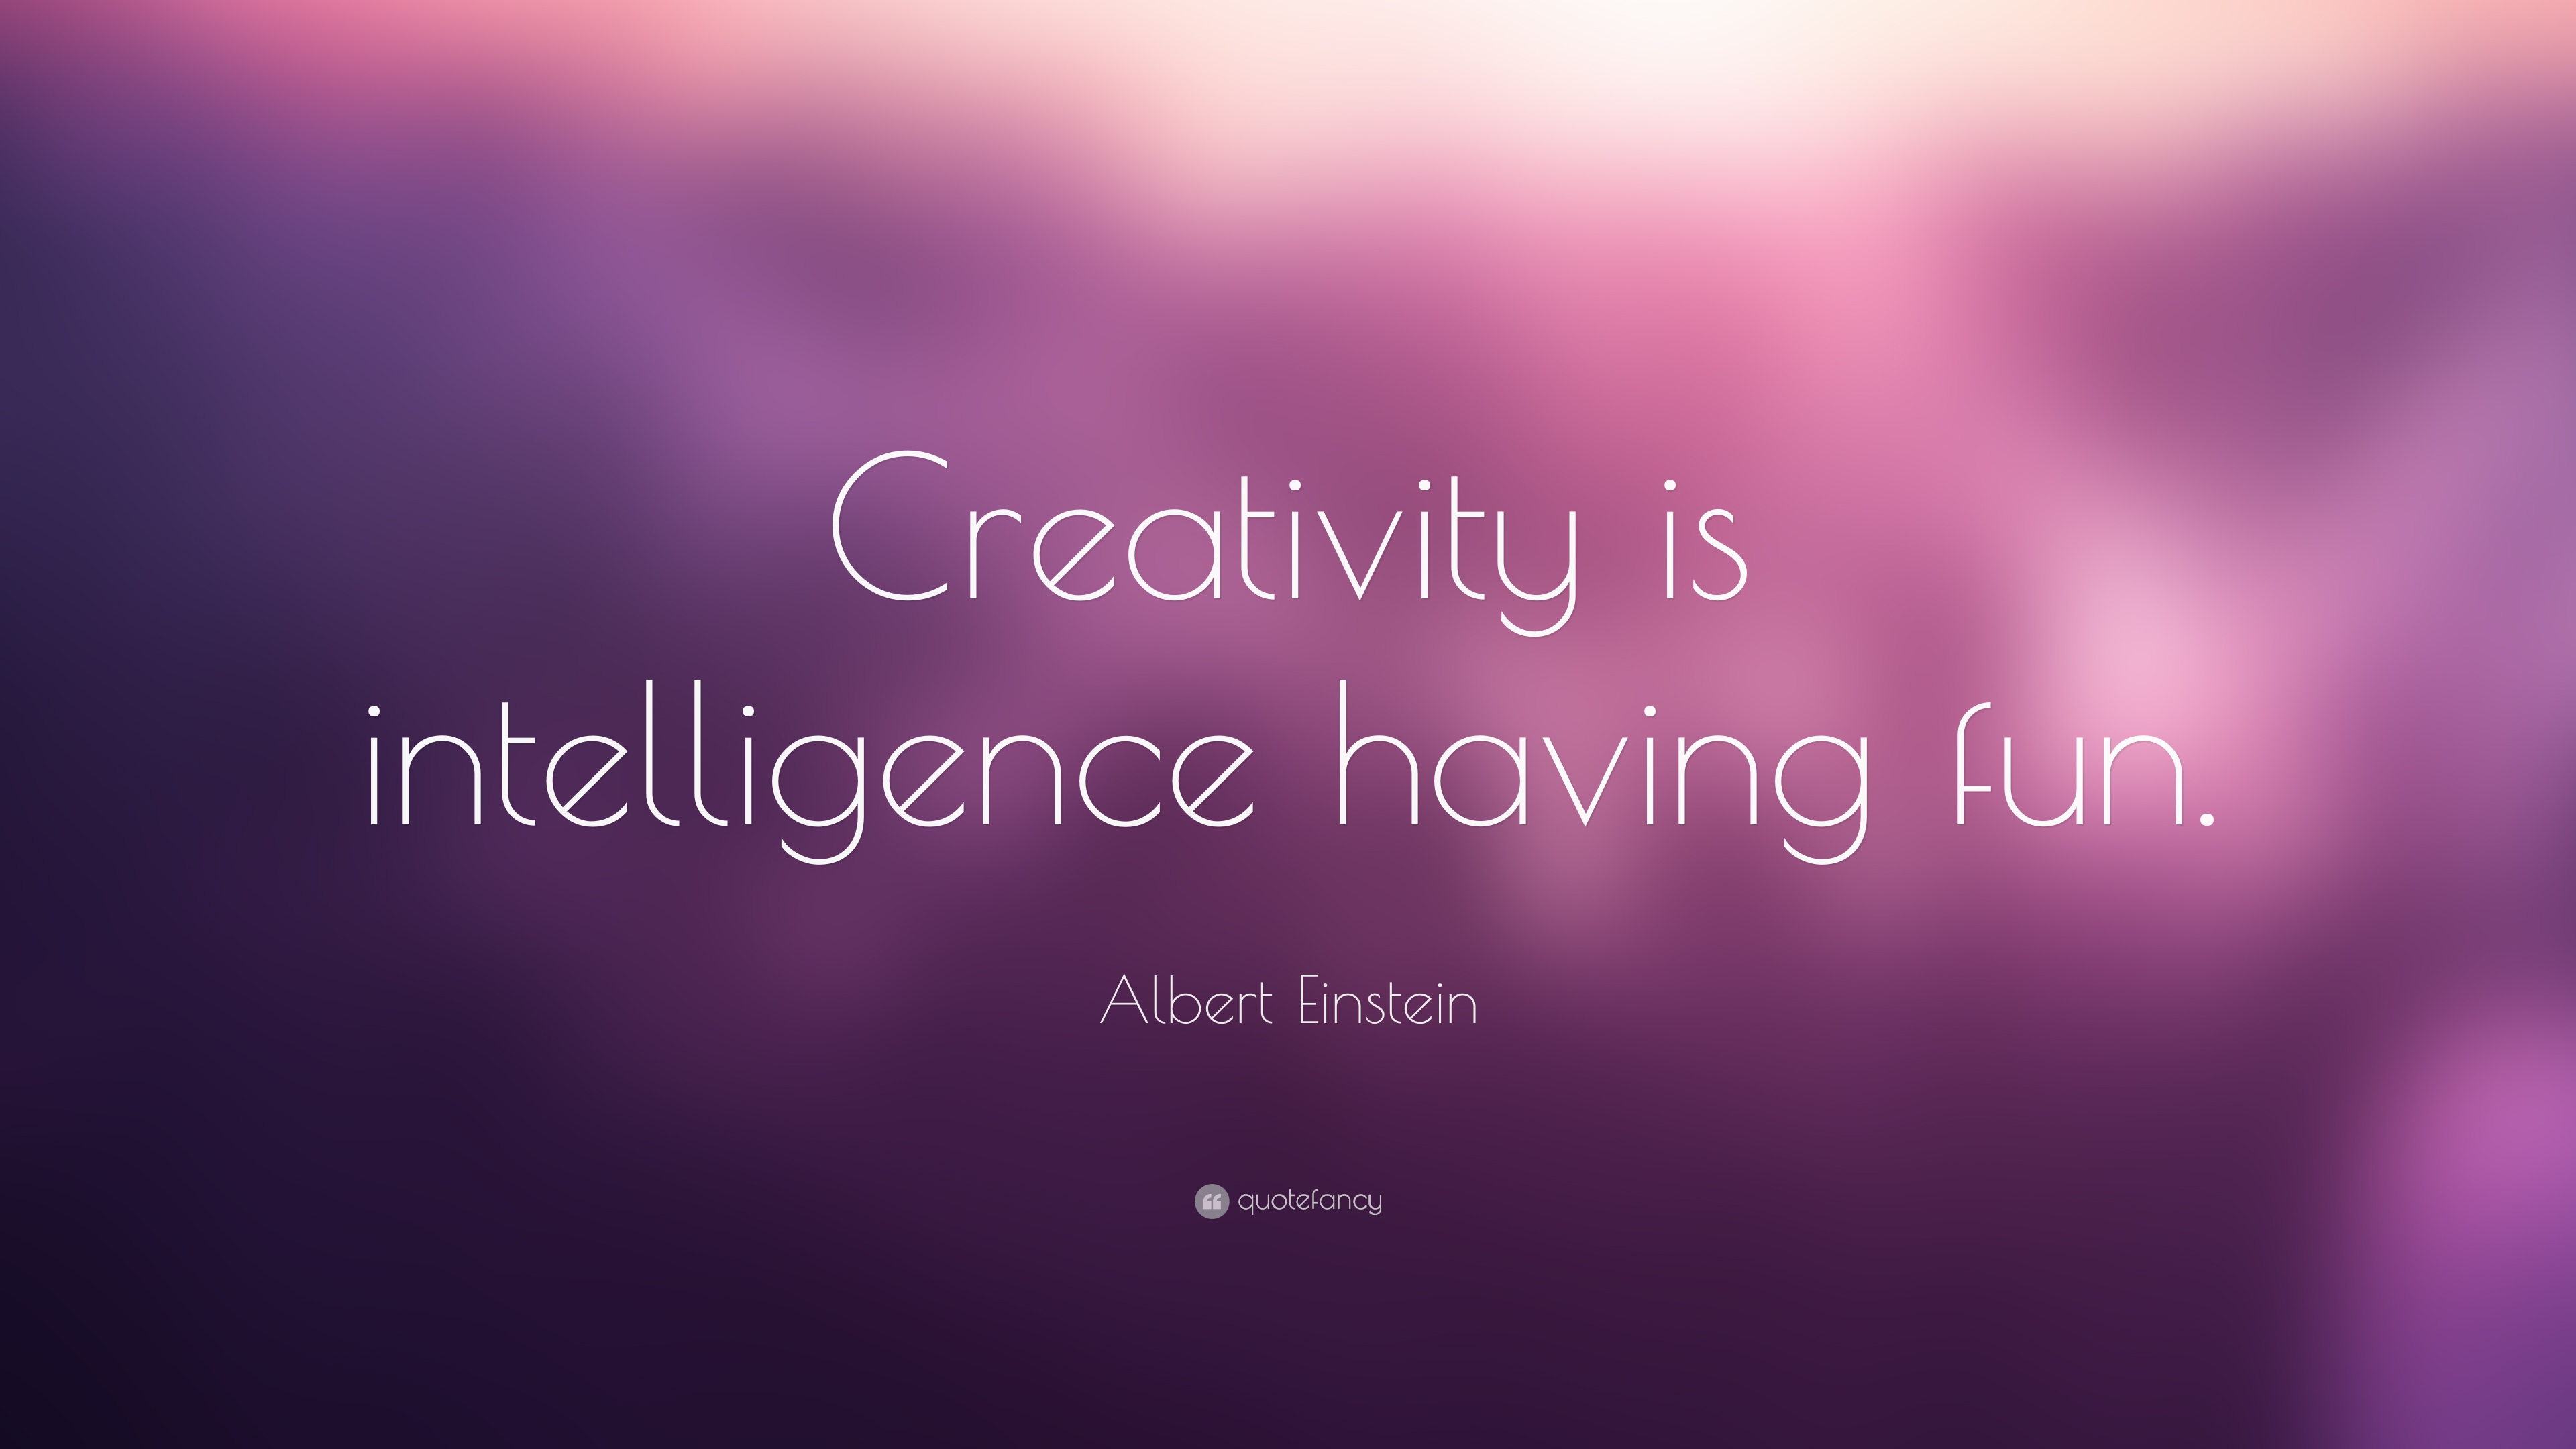 Creativity Quotes (56 wallpapers) - Quotefancy